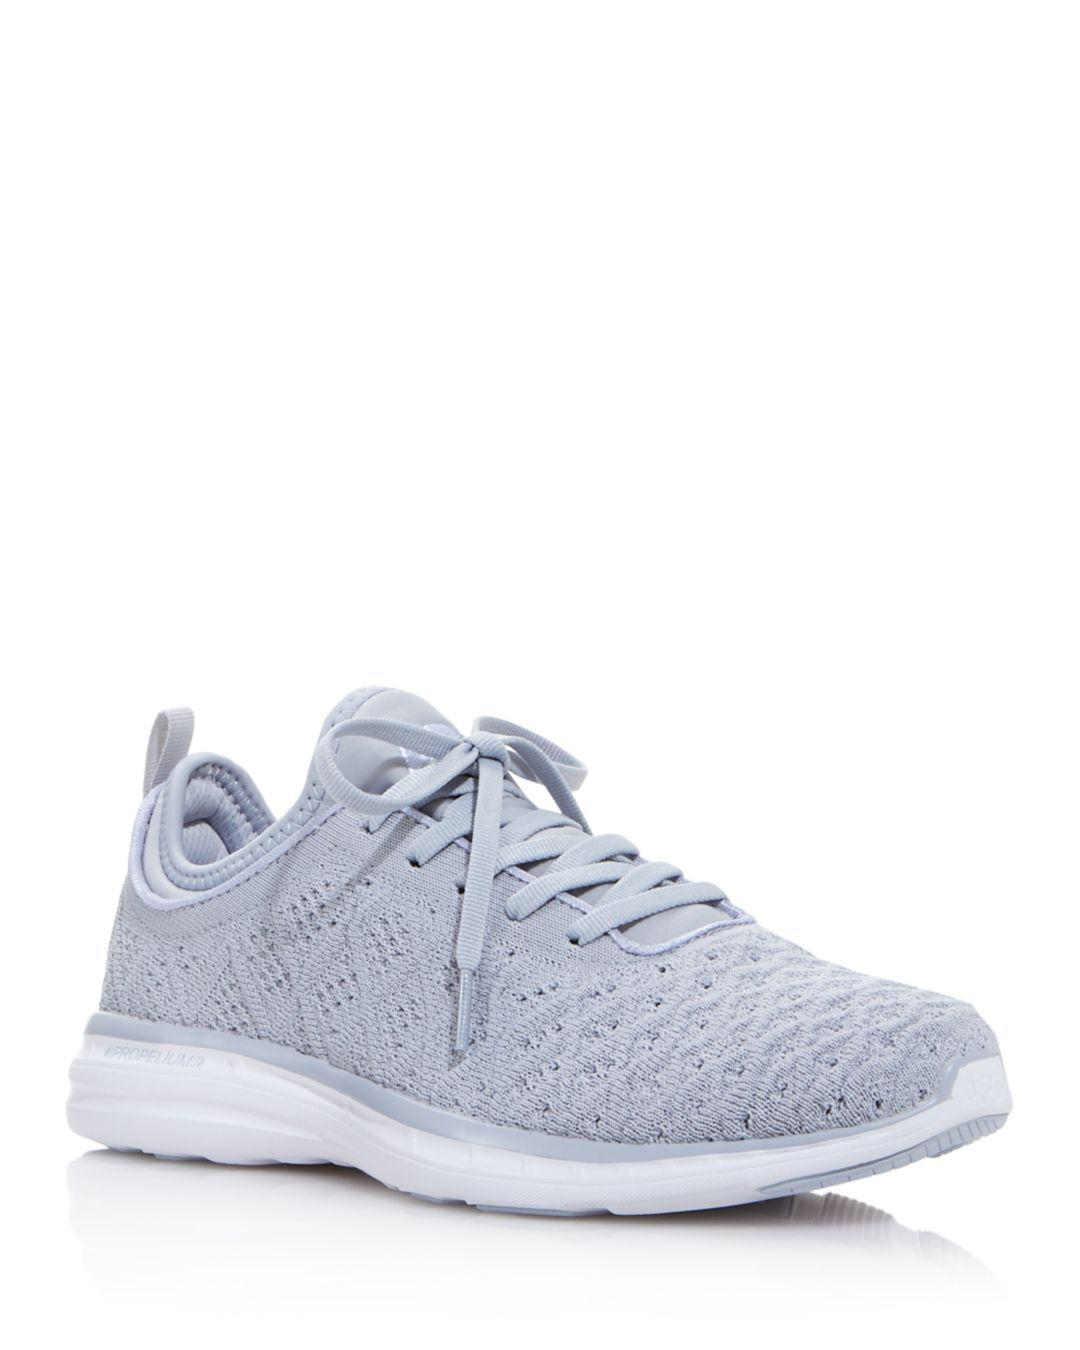 c4433537b662 Apl: Athletic Propulsion Labs. White Women's Phantom Techloom Knit Low-top  Trainers